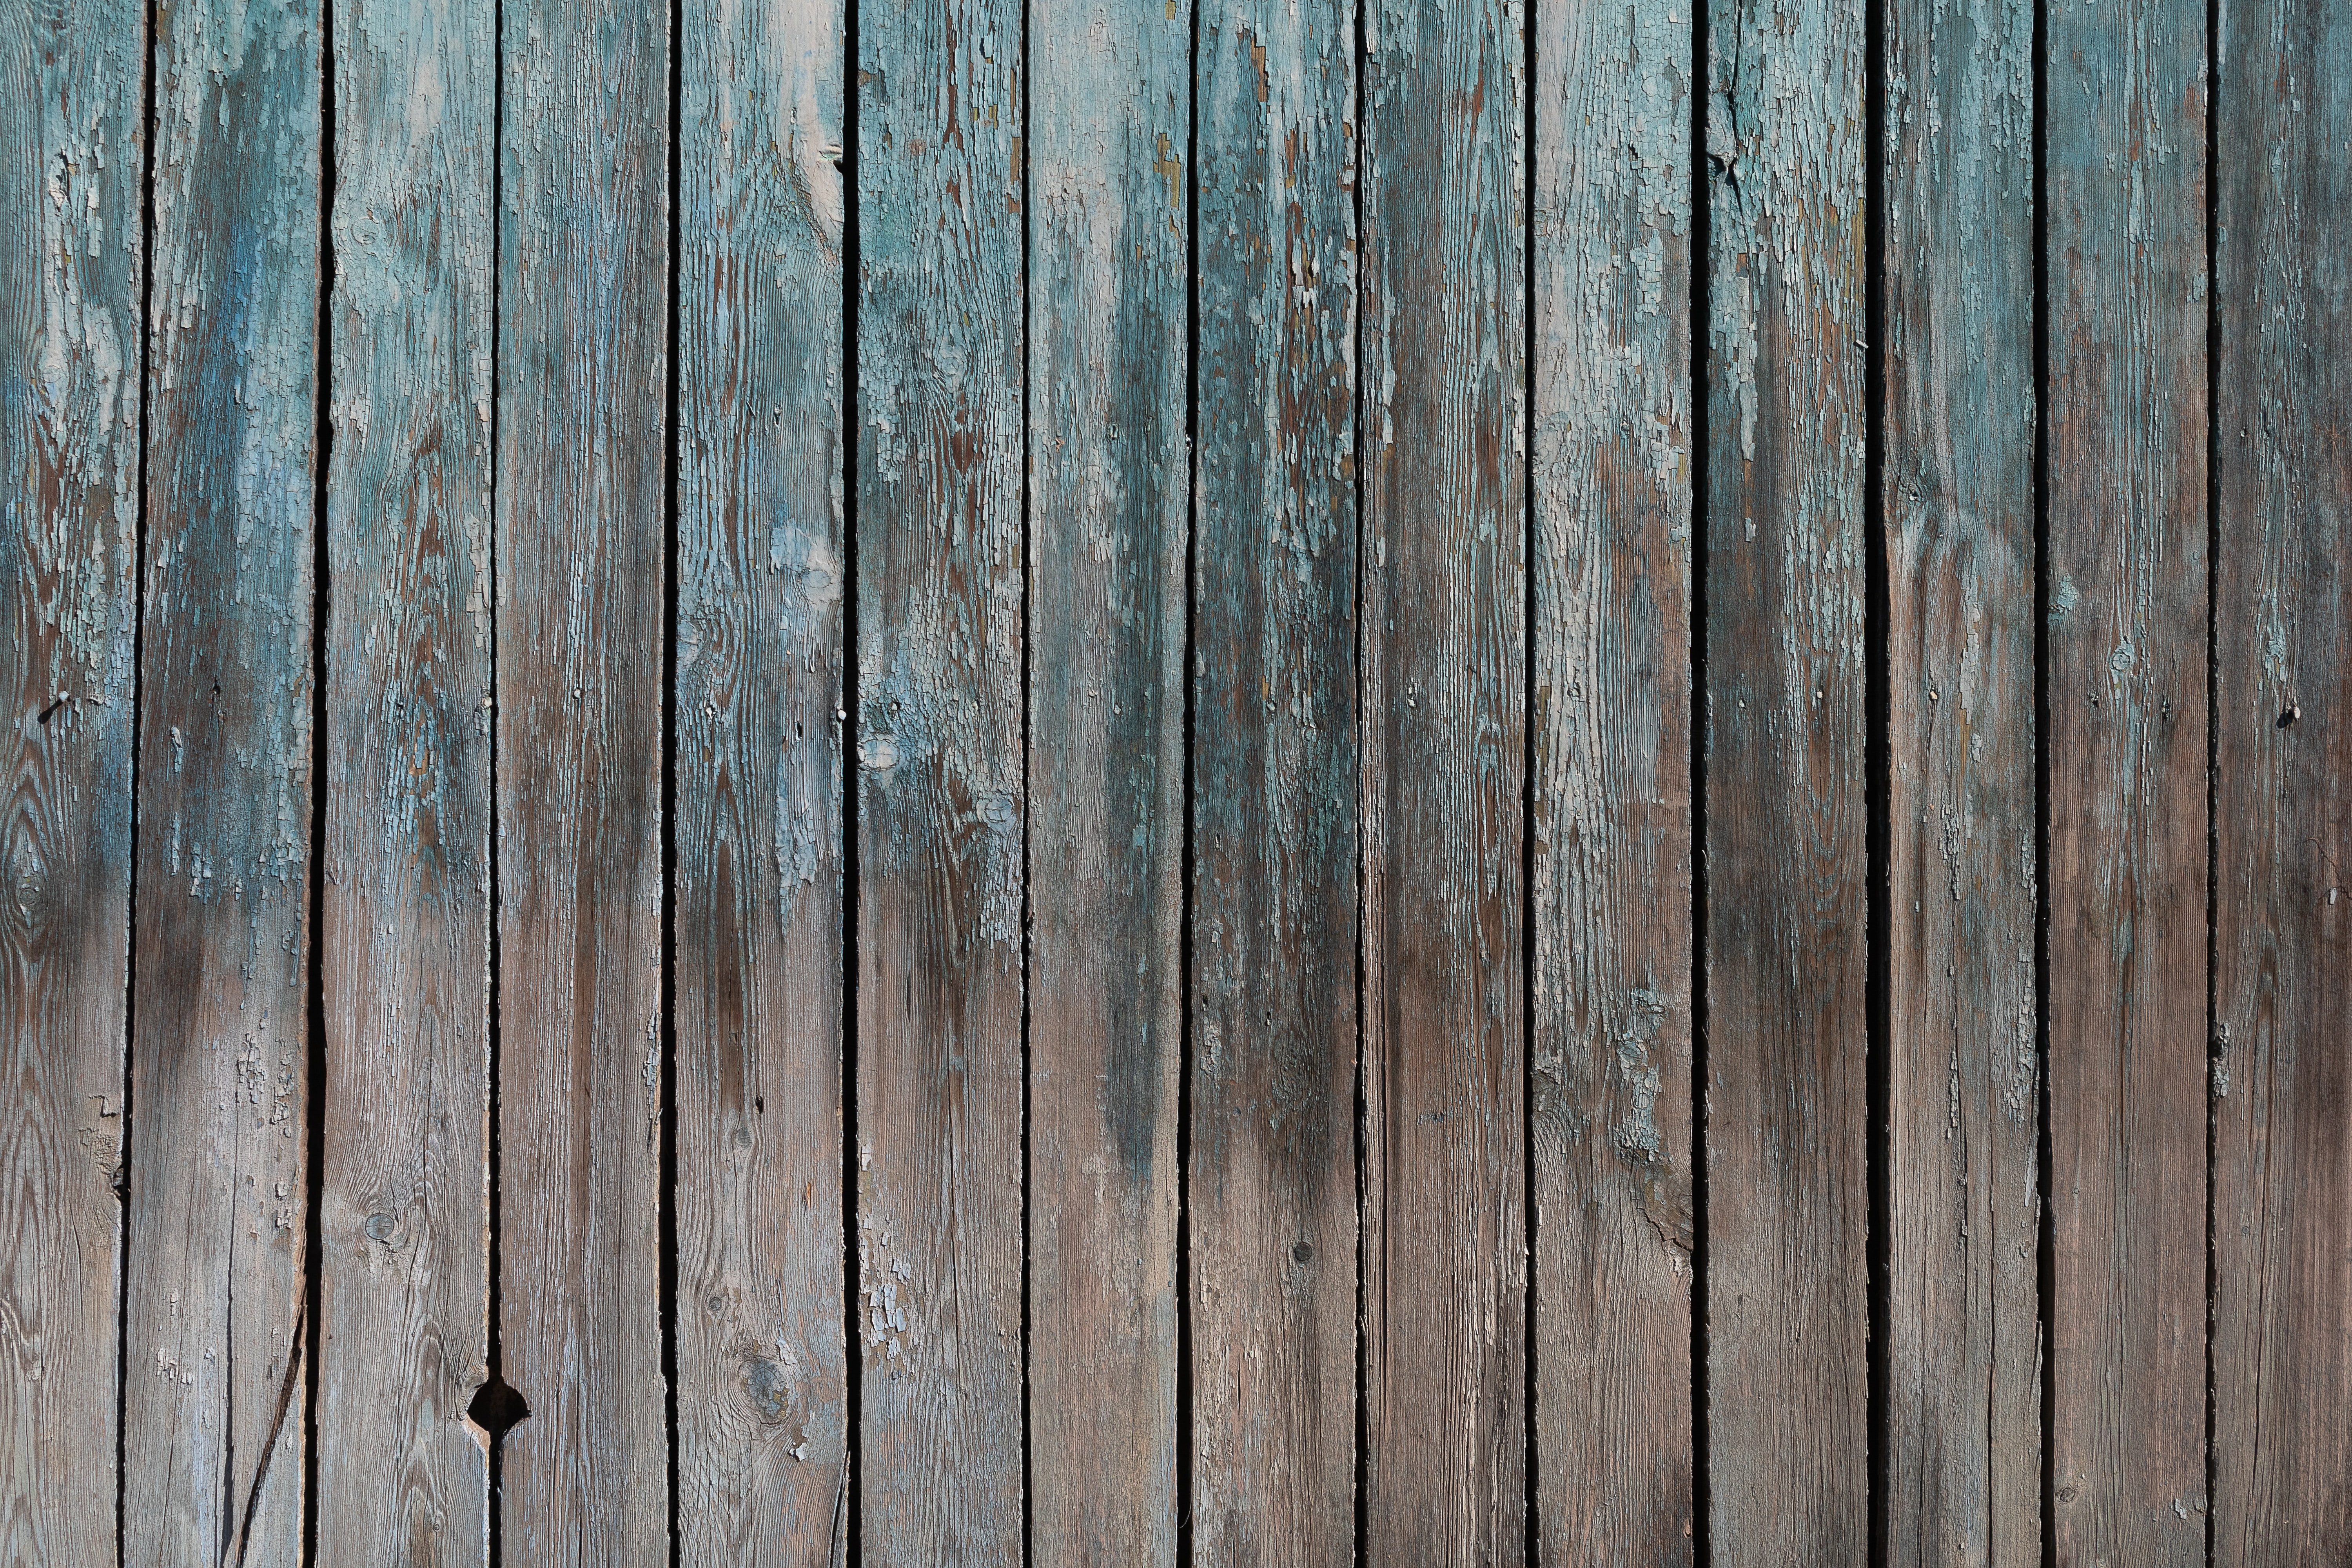 60557 download wallpaper Textures, Texture, Planks, Board, Wood, Wooden, Old screensavers and pictures for free